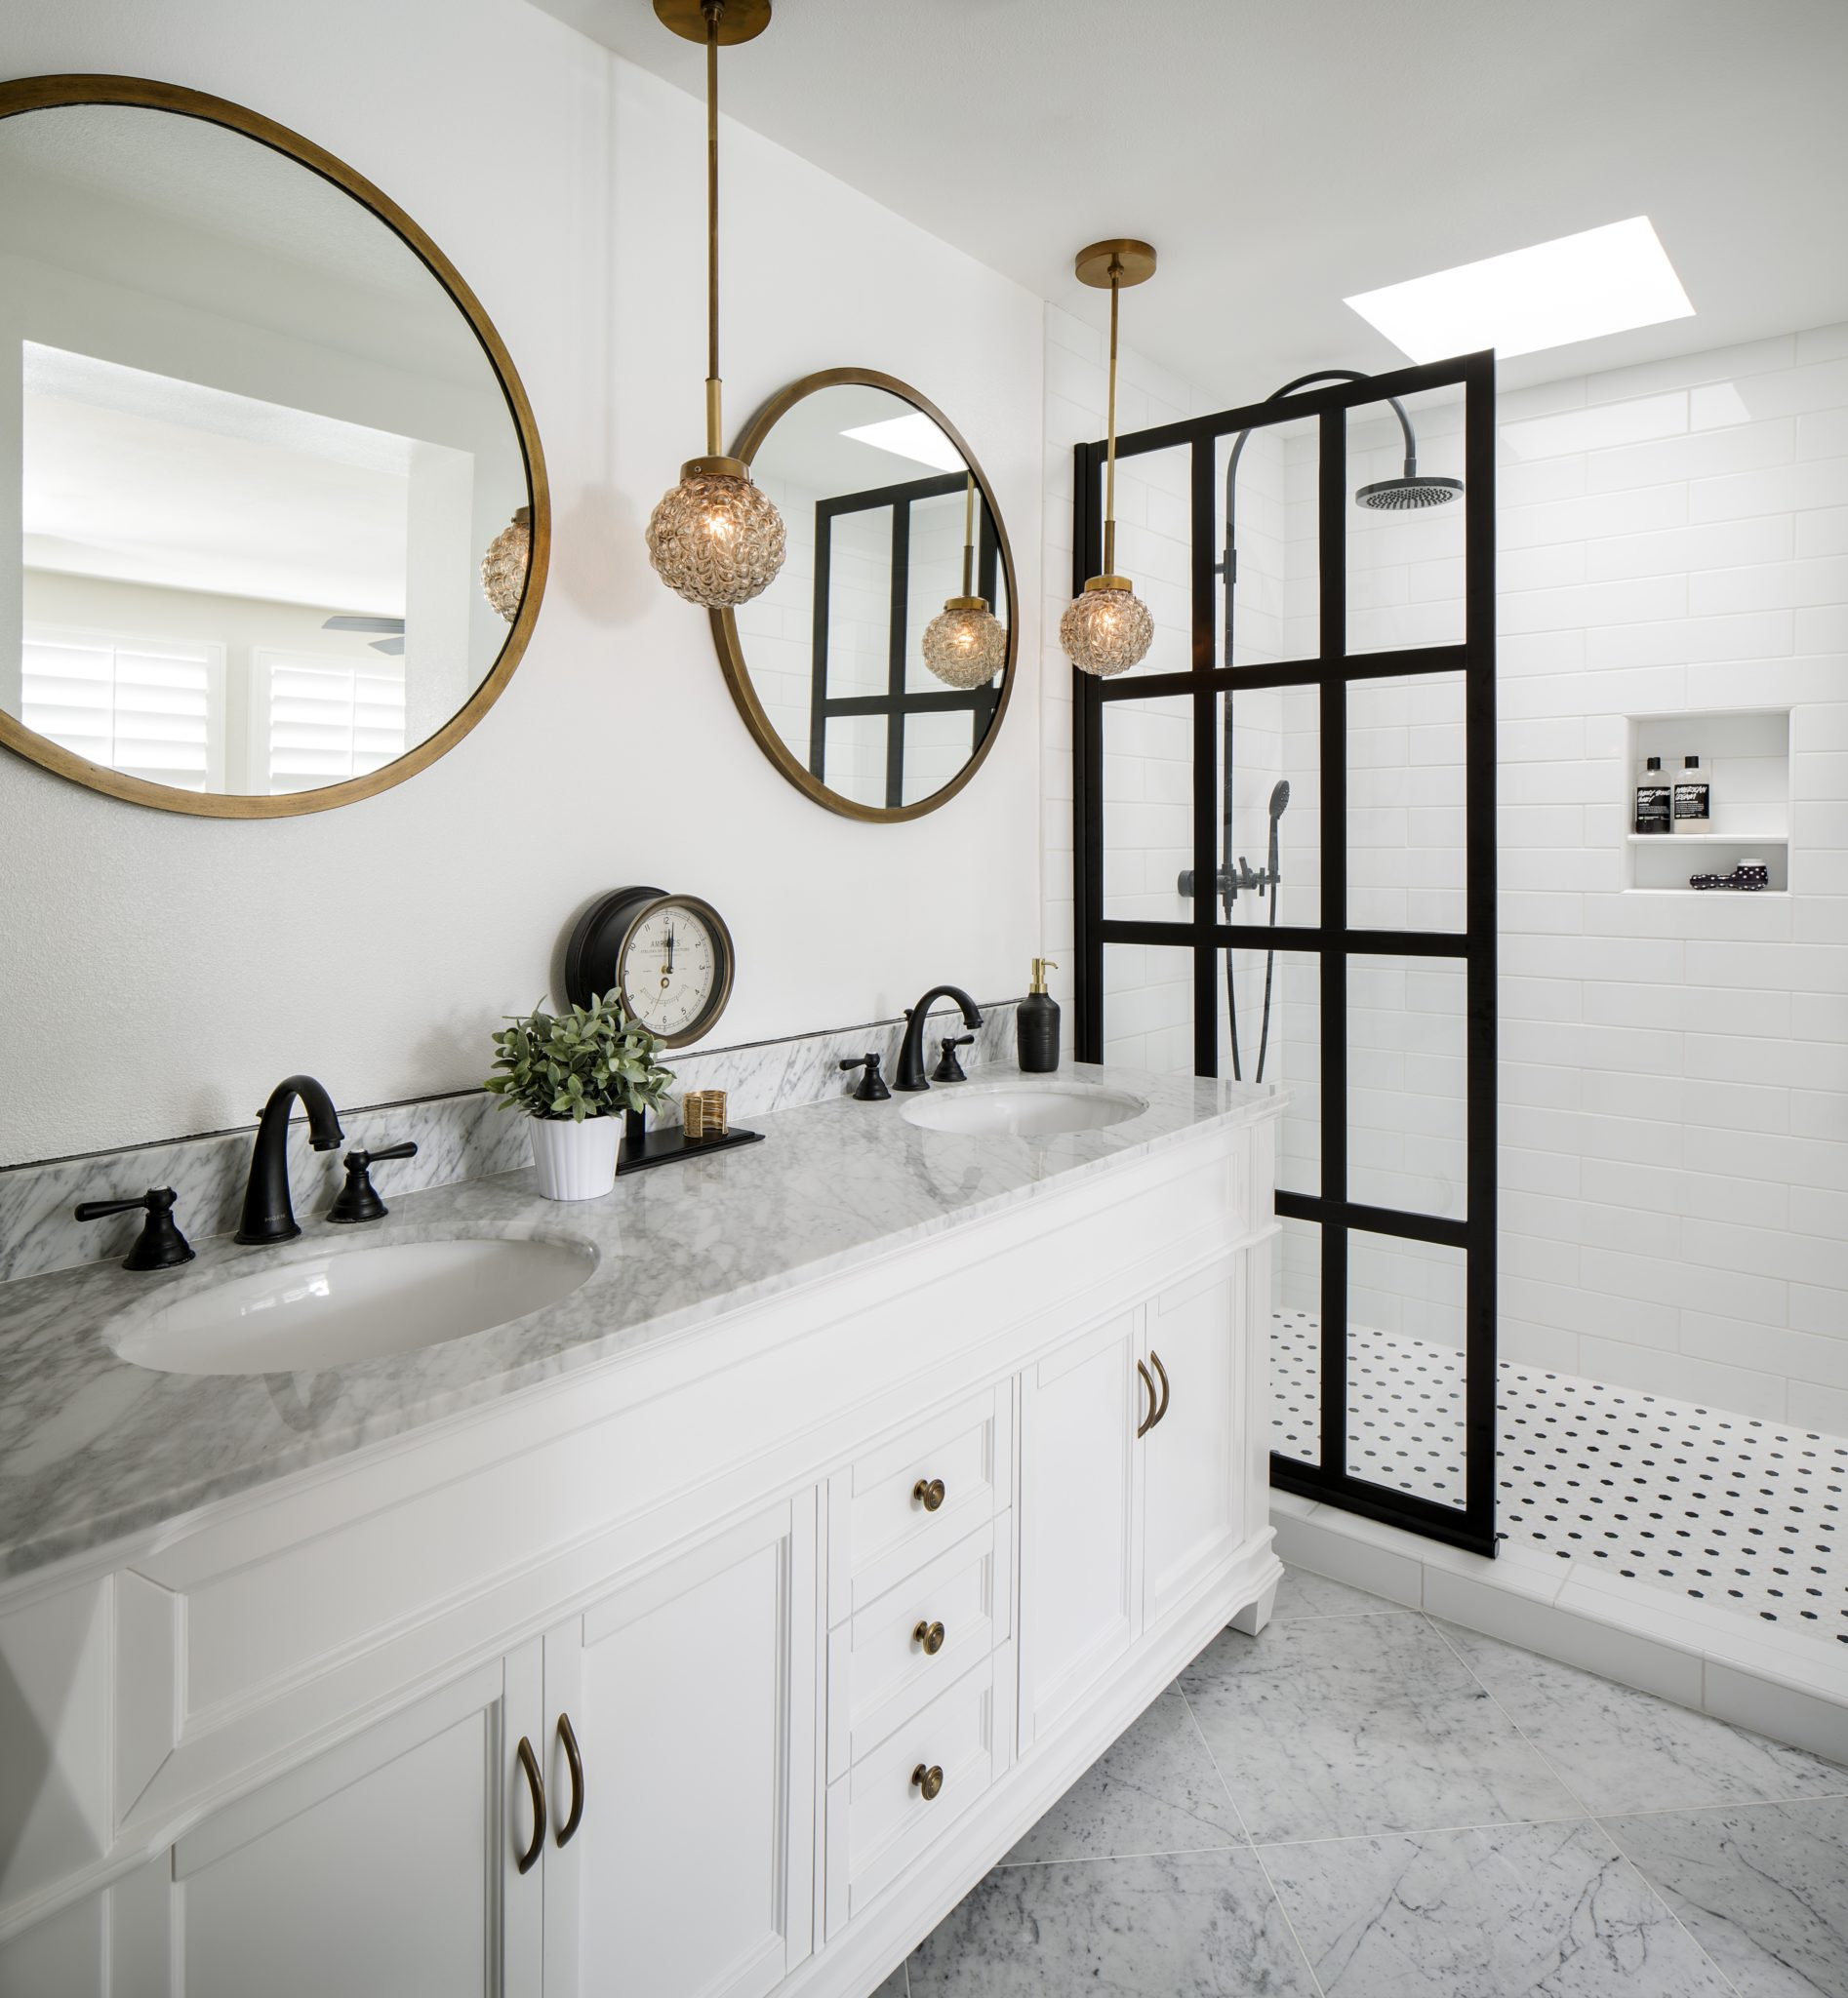 Contrast and classic elements bring drama and timelessness to this master bath. by CM Natural Designs